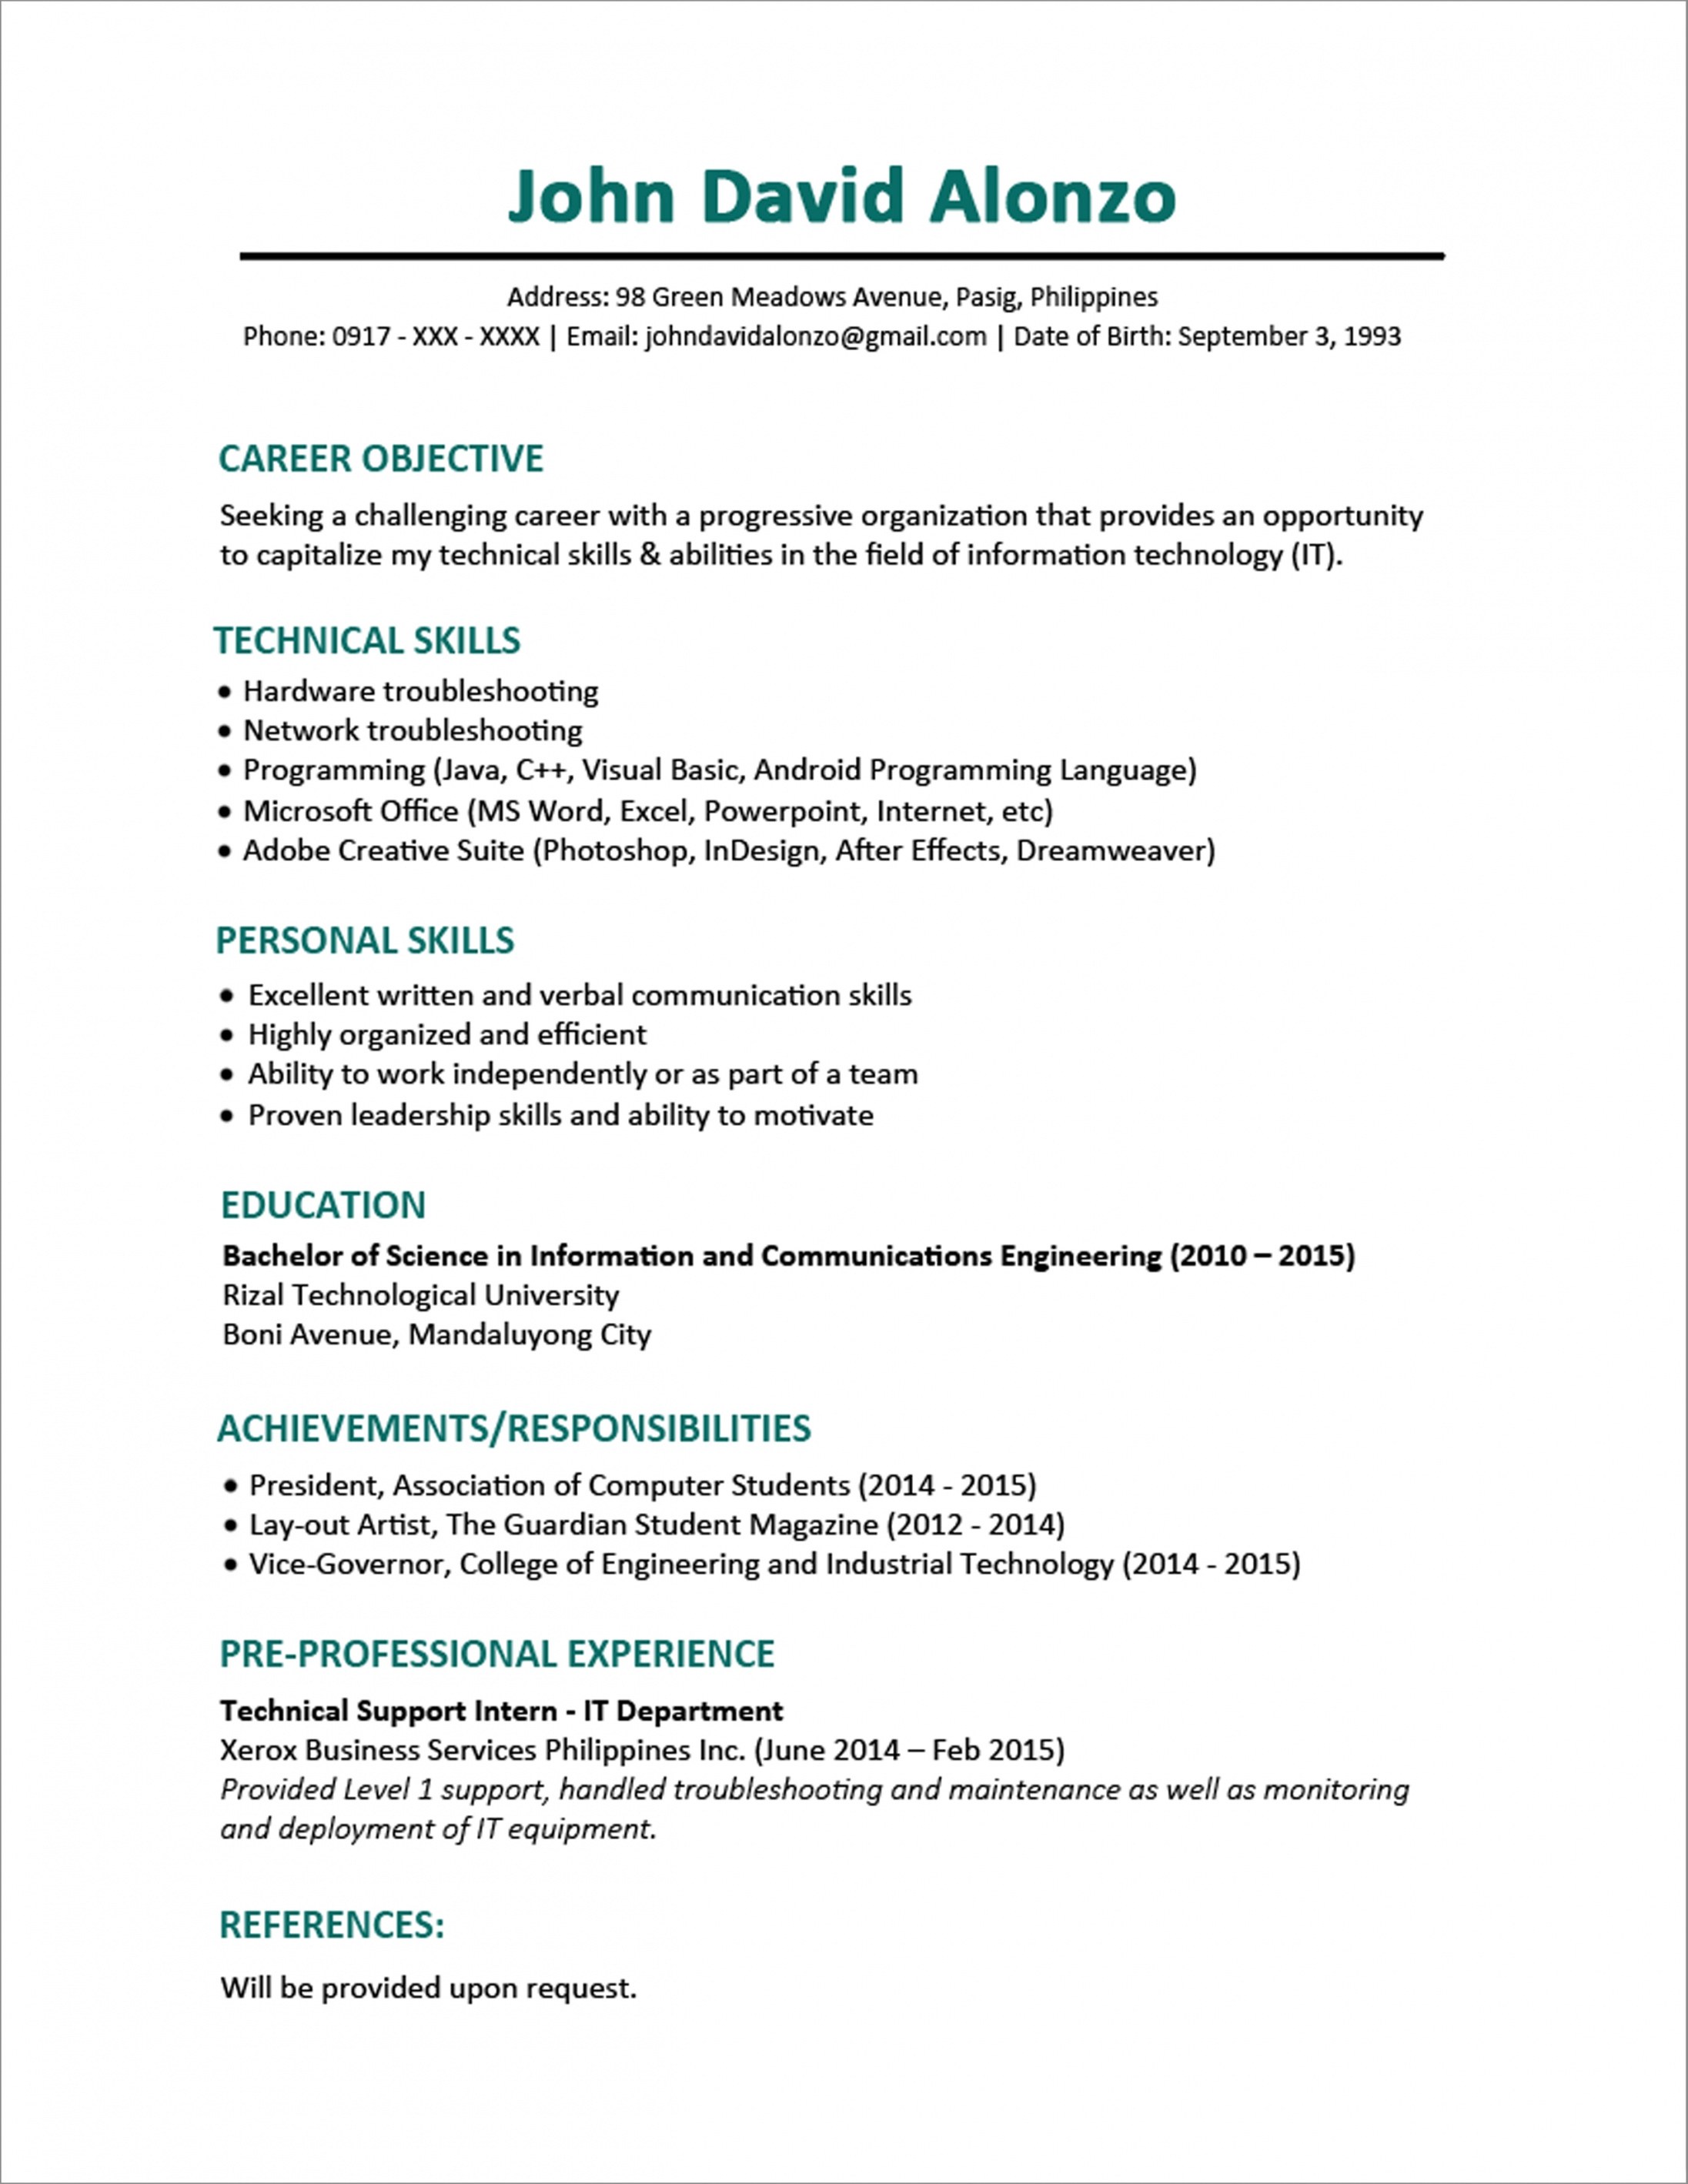 Copy Of Resume Format - Resume Format